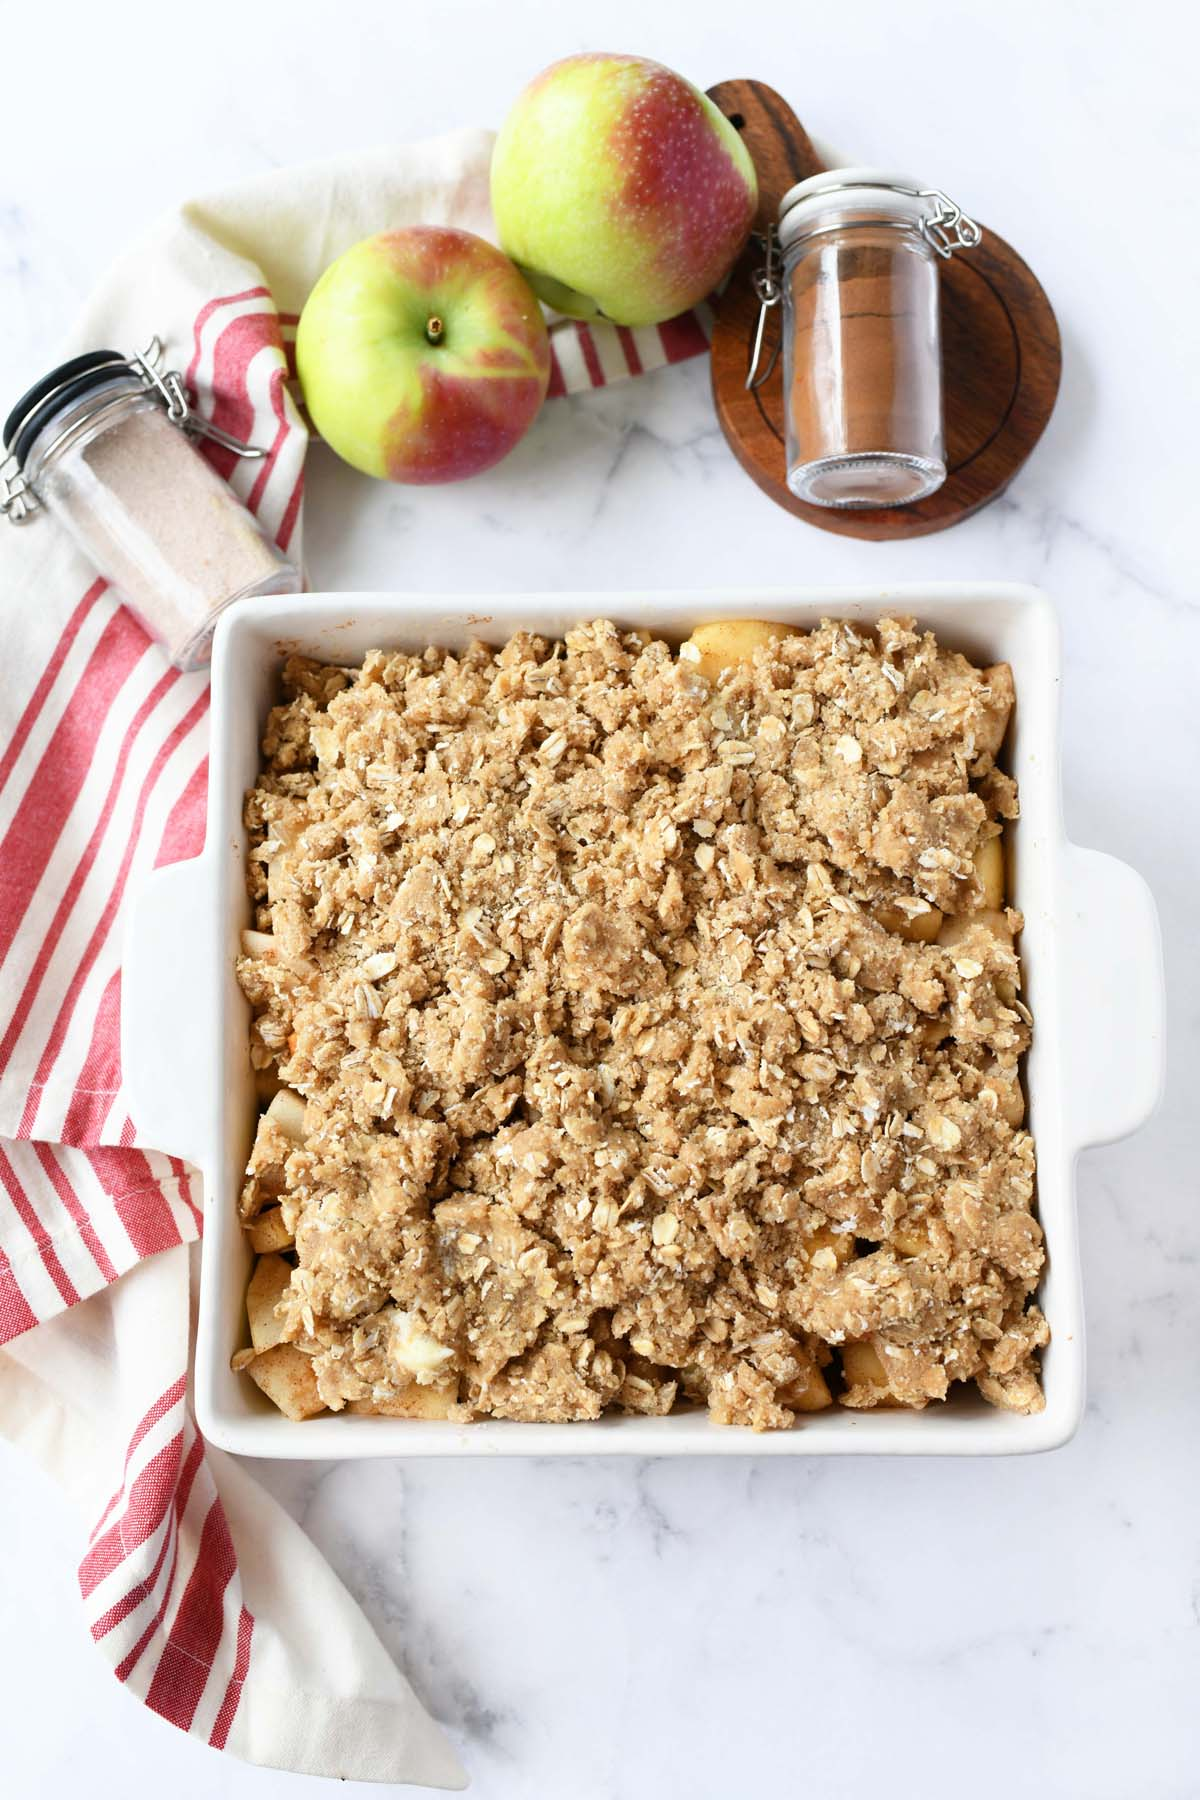 Unbaked apple crisp in a small white pan.